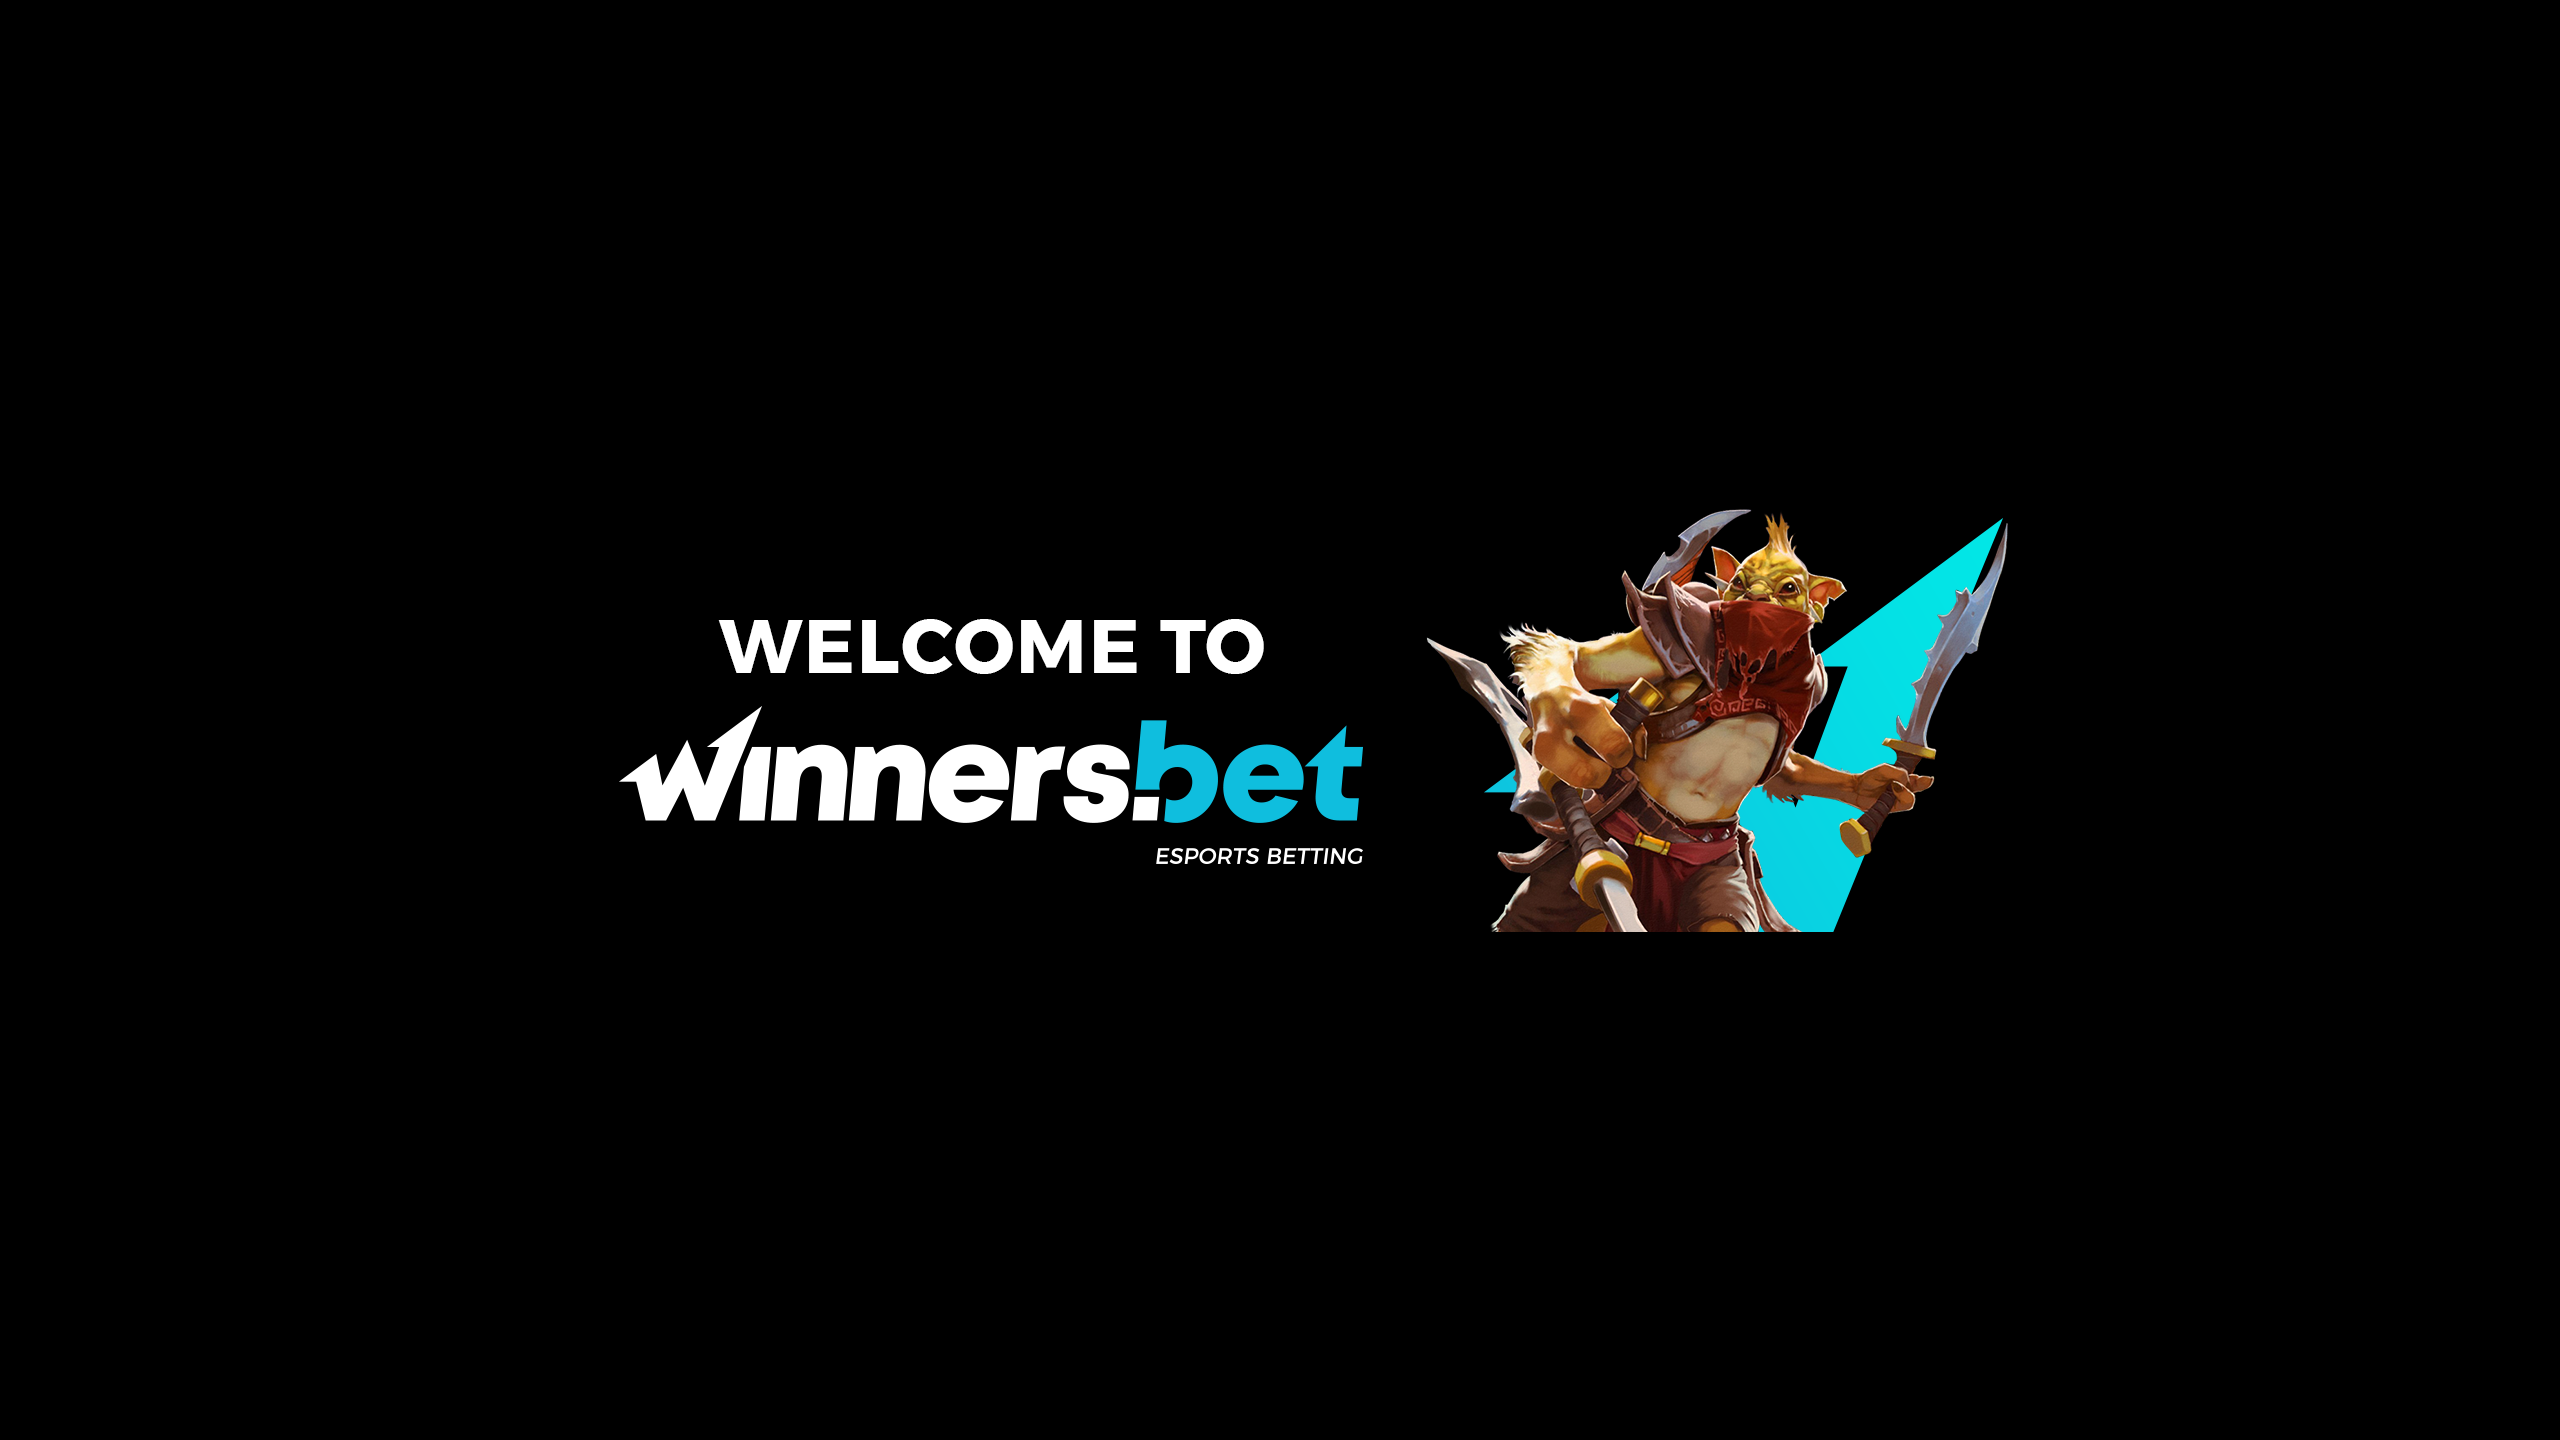 WIN launches latest esports betting platform